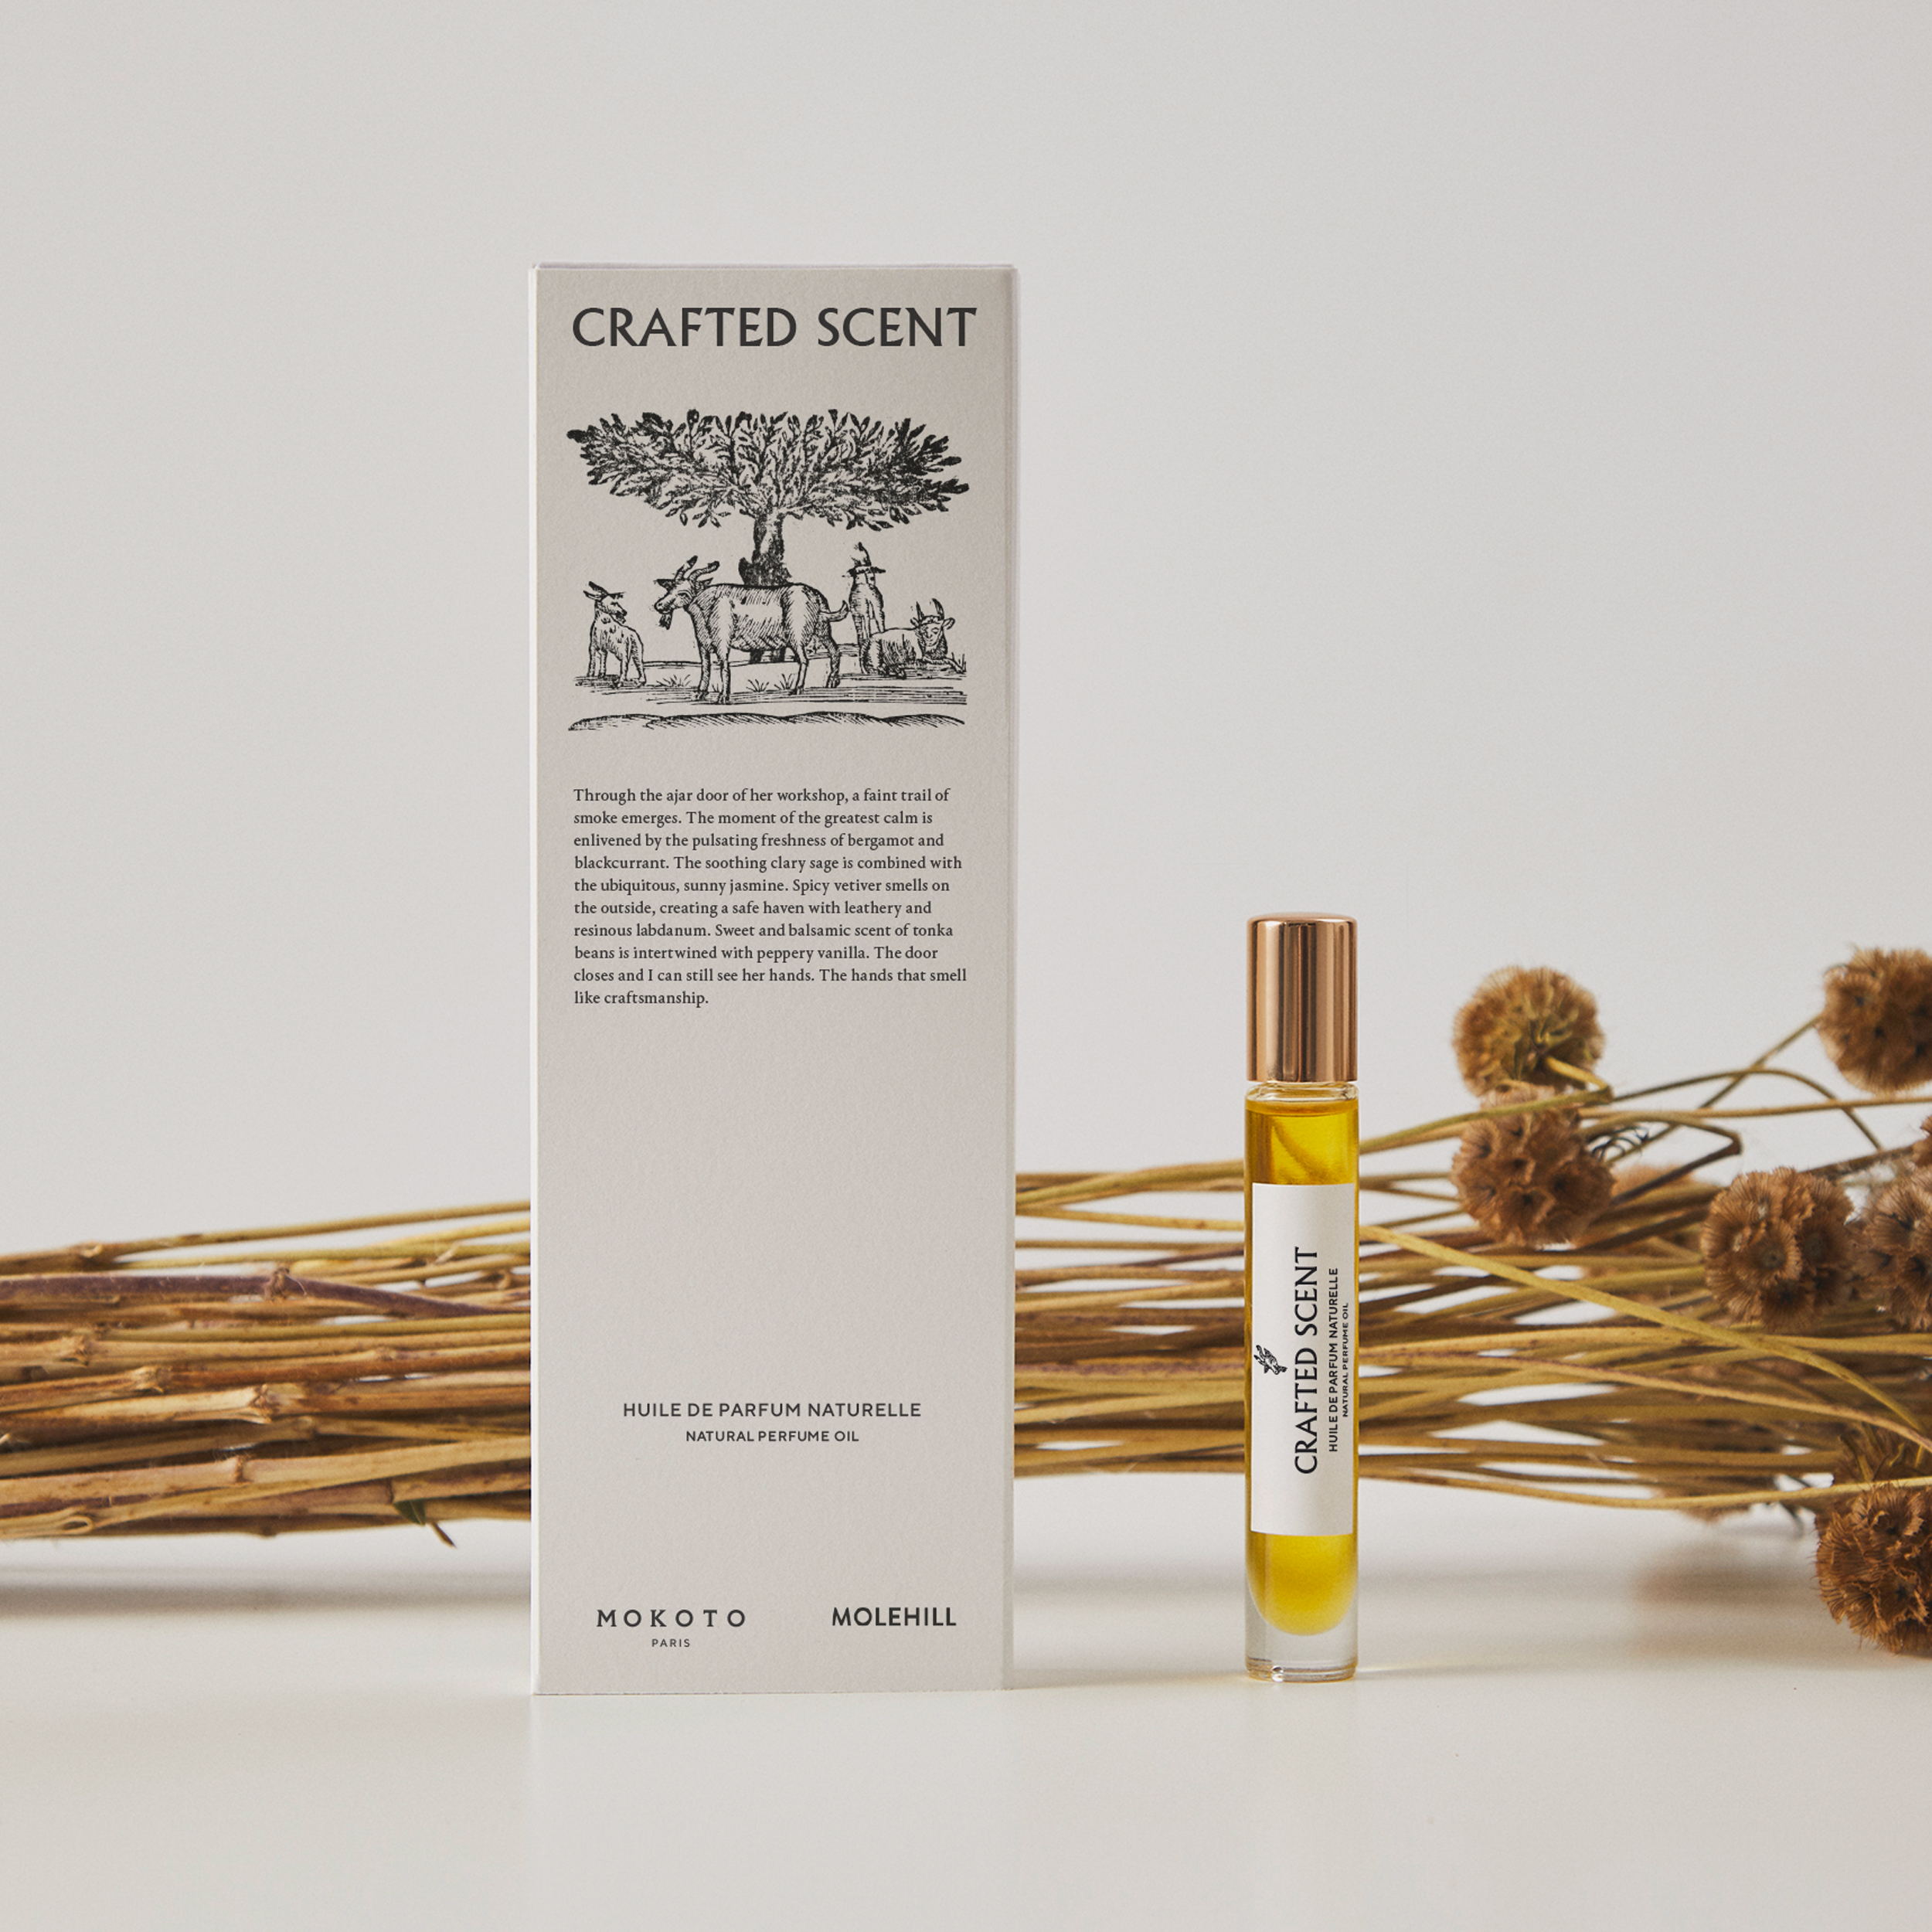 Crafted Scent Molehill 10ml